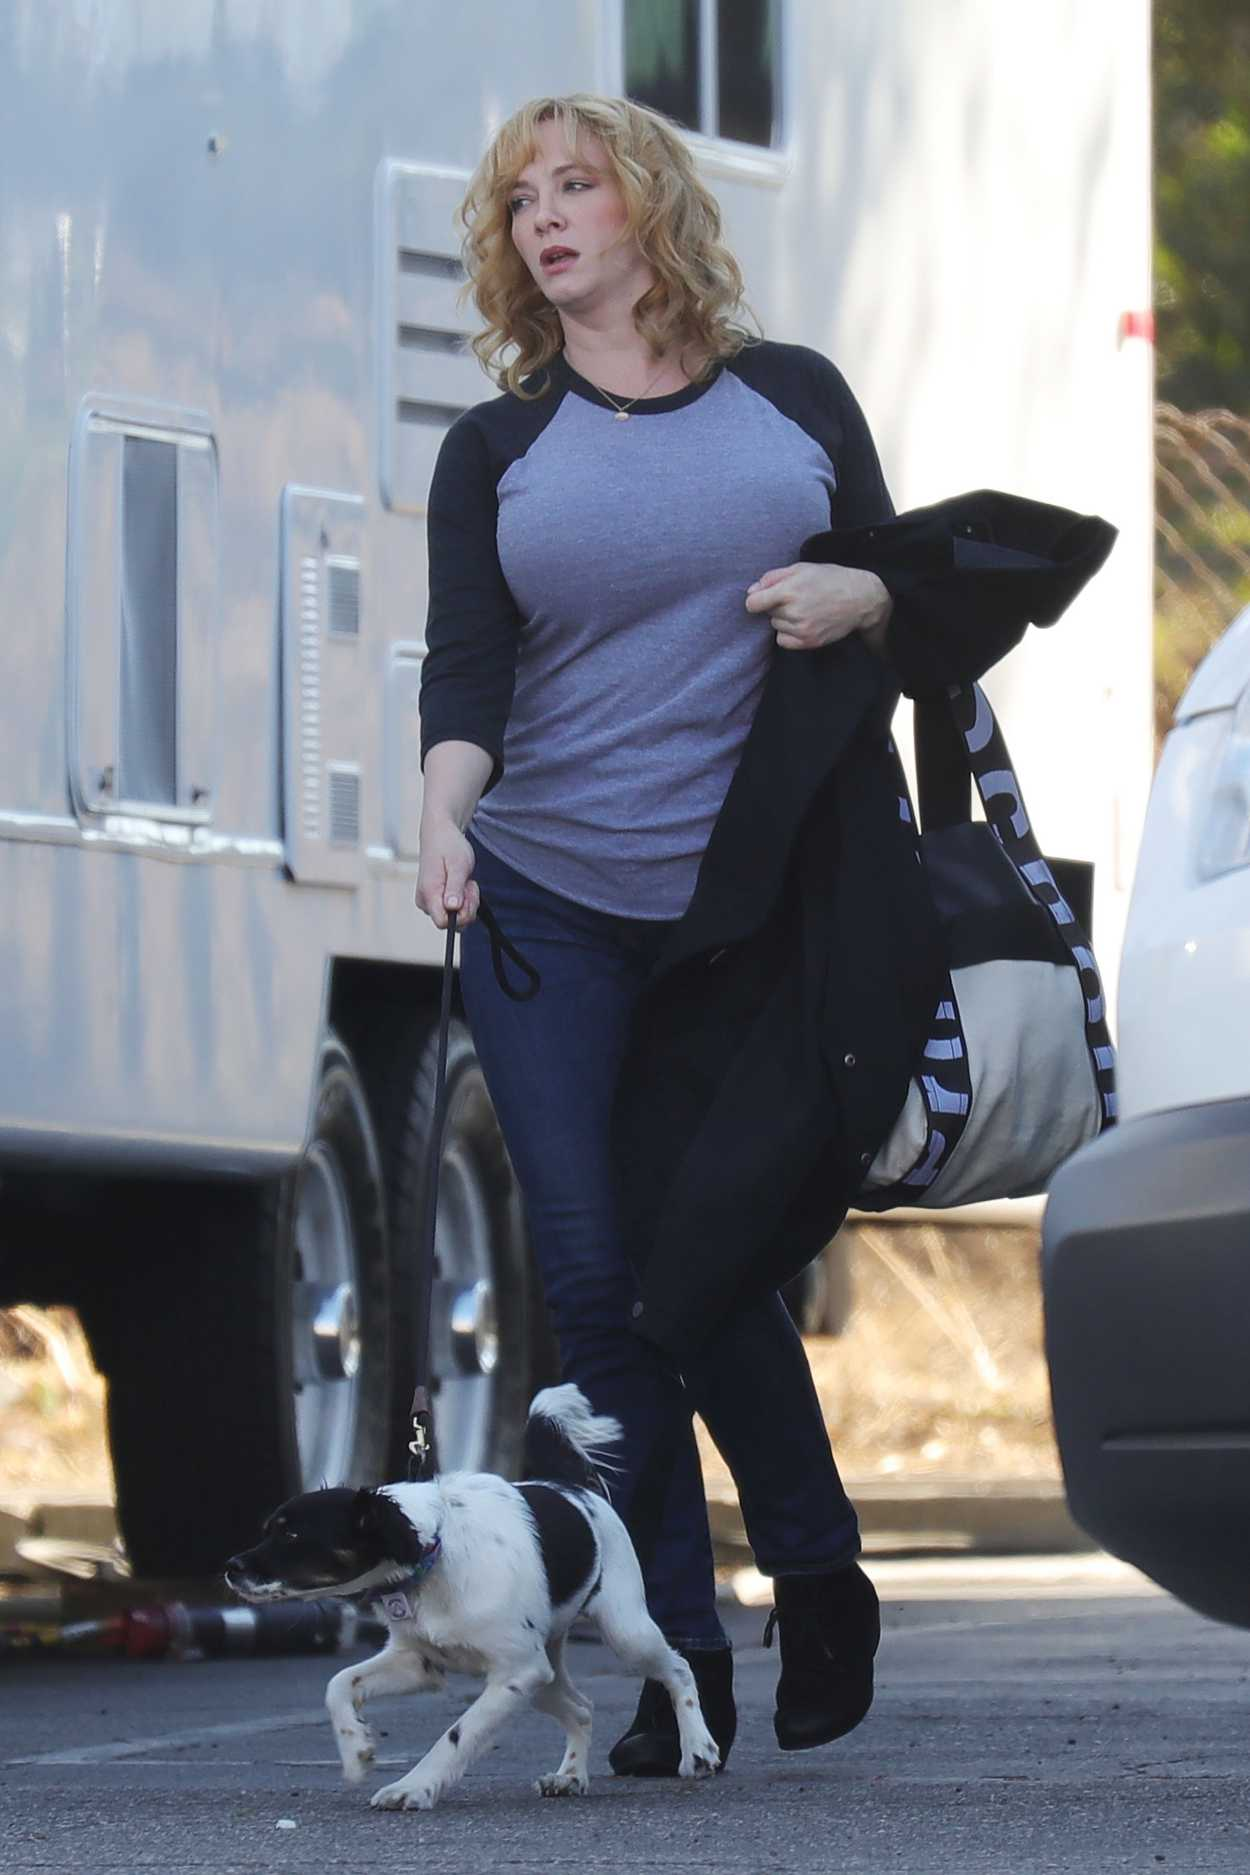 Christina Hendricks Walks Her Dog Out In Los Angeles 10 21